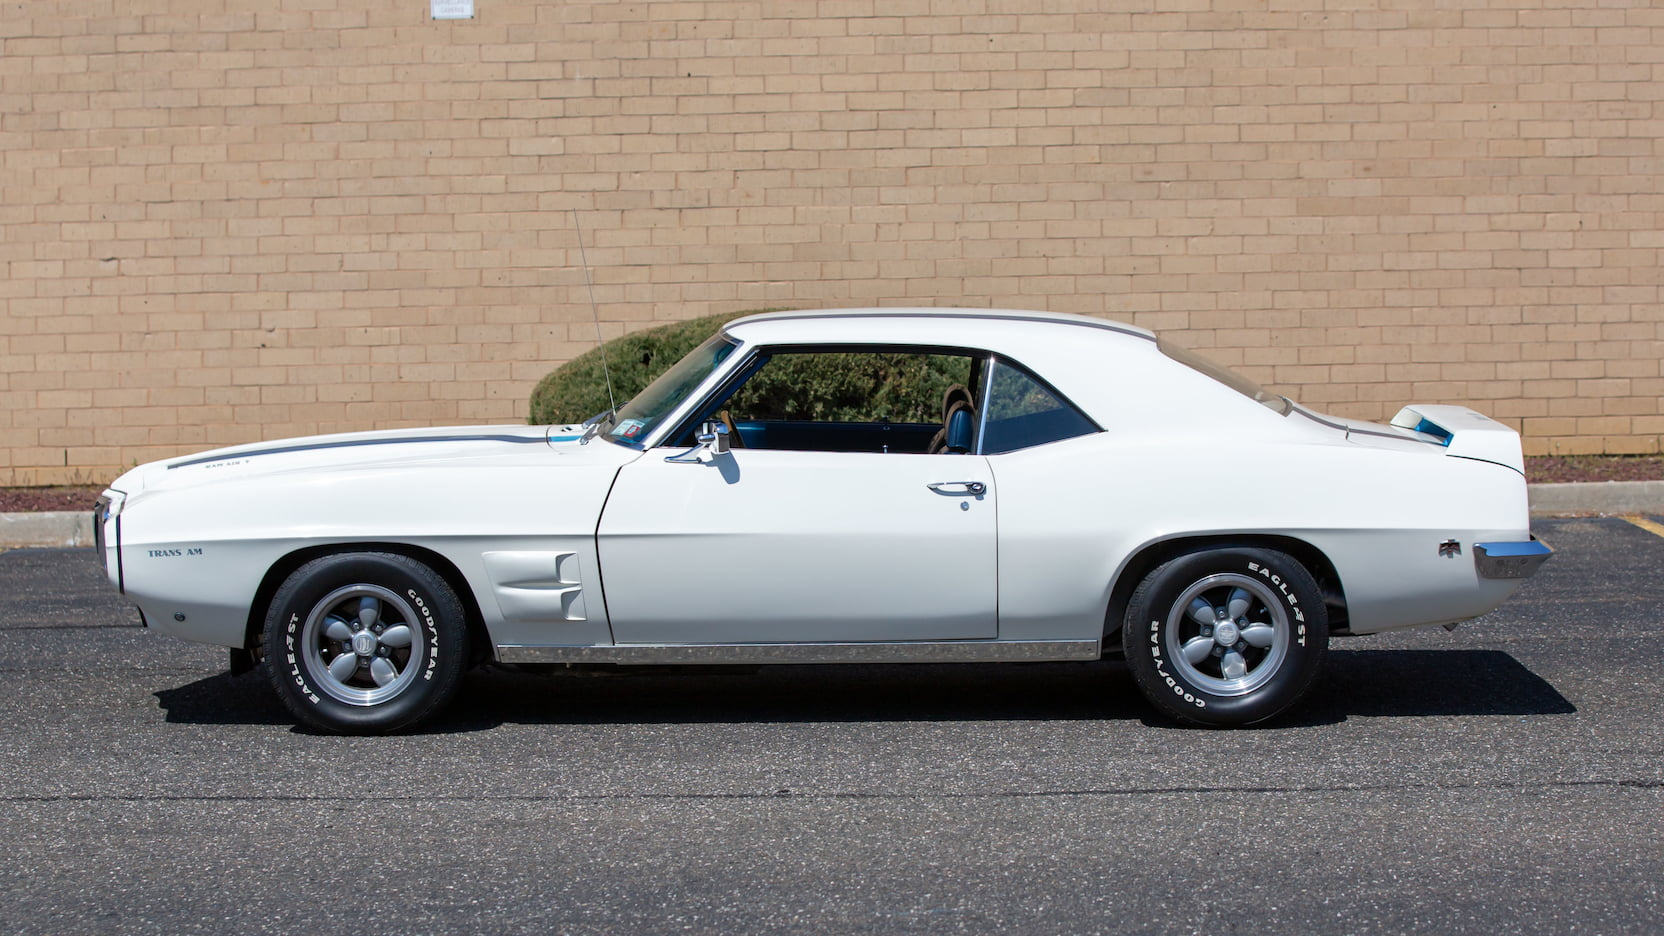 1969 Pontiac Trans Am 303 Ram Air V side profile